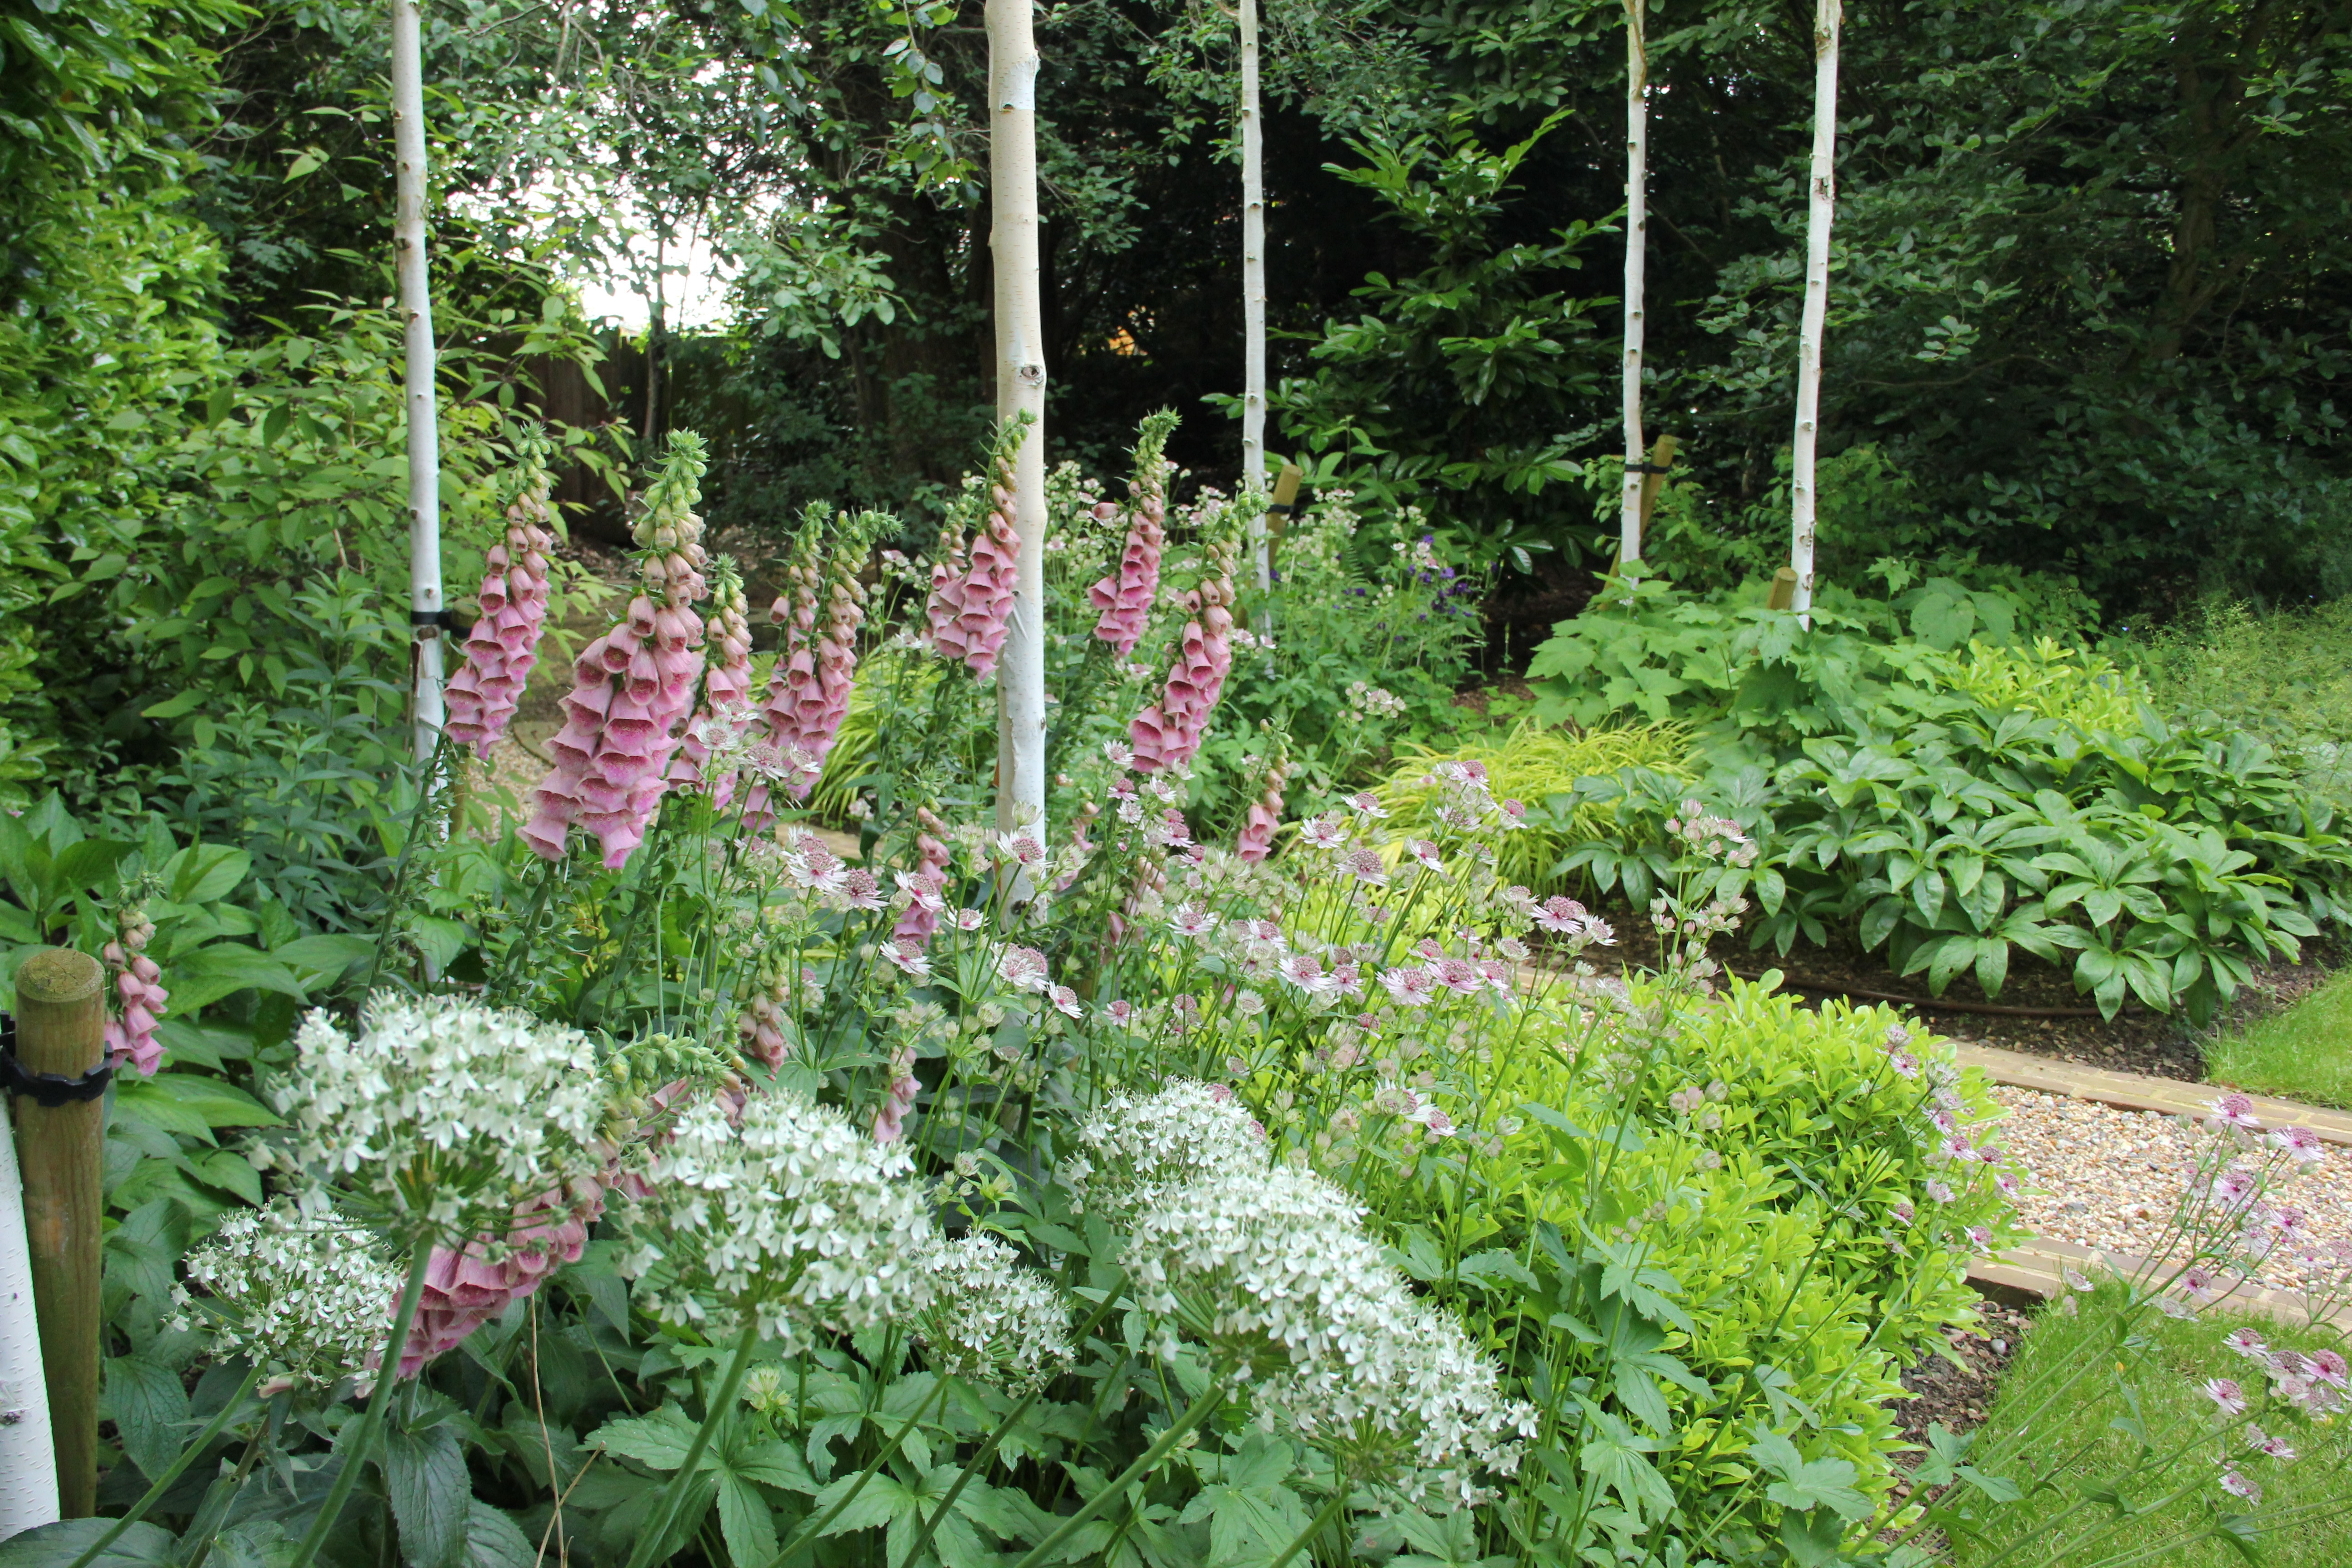 St Albans traditional style country garden design by Amanda Broughton